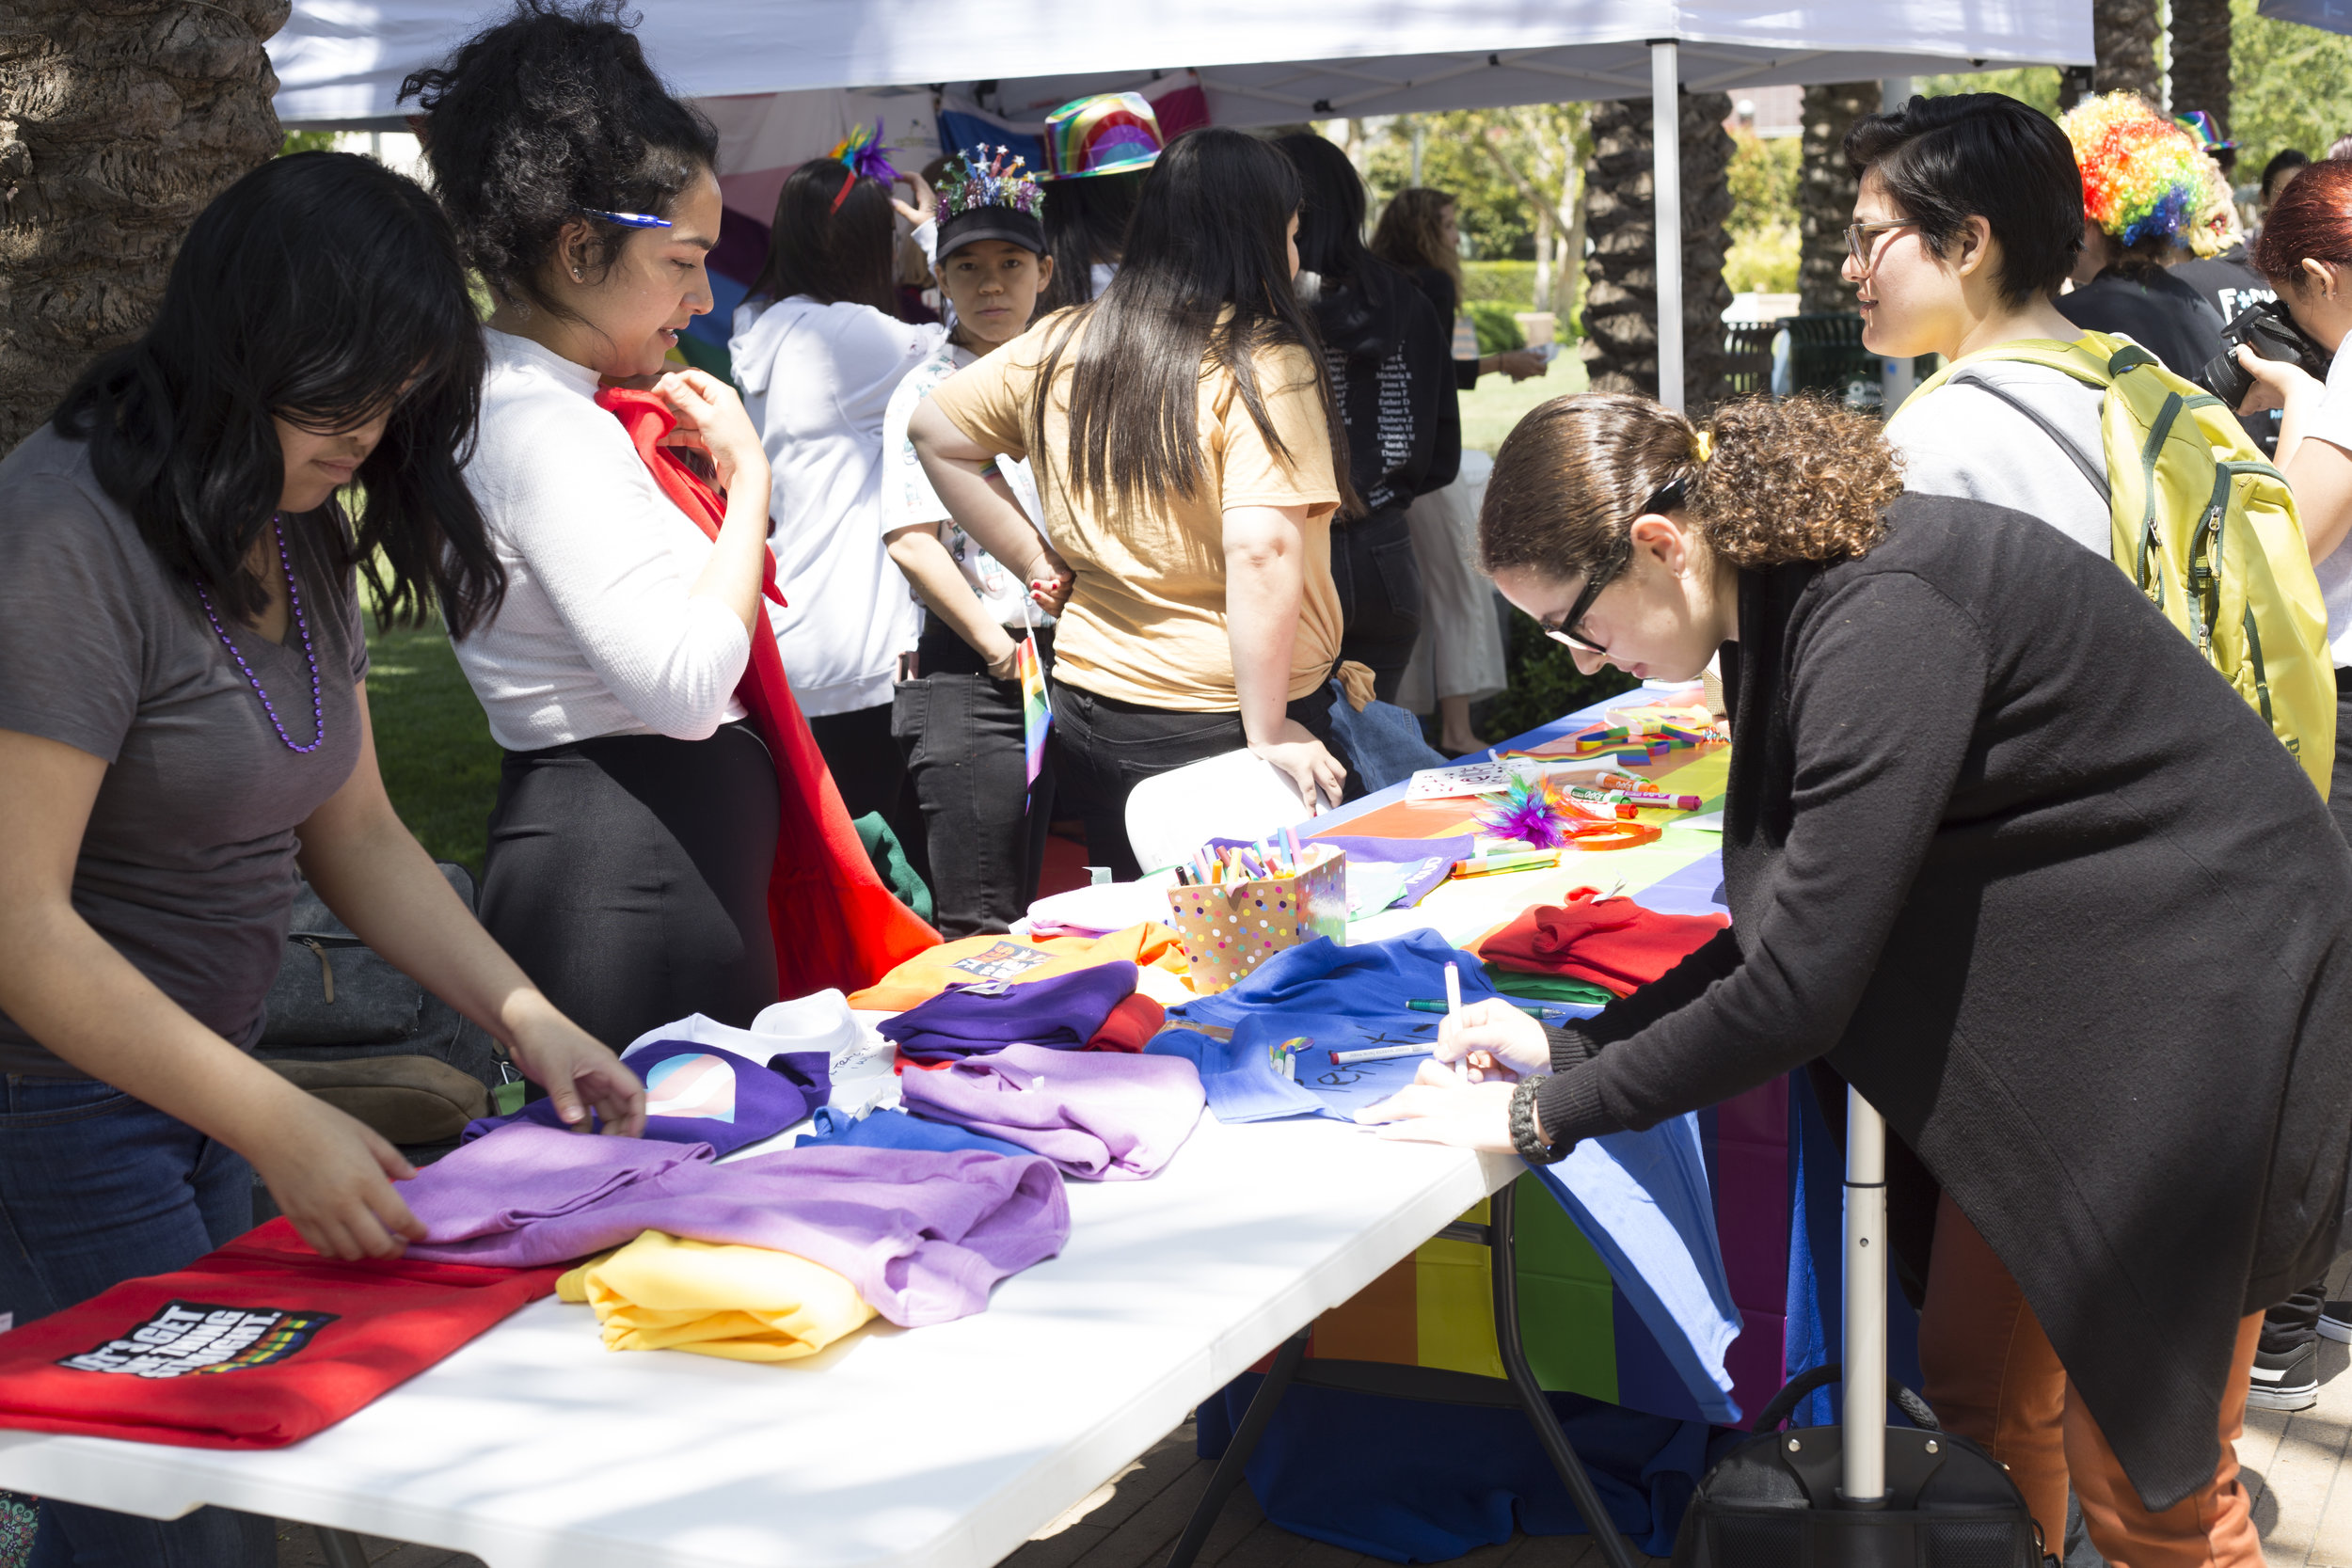 Engaged guests. Santa Monica College (SMC) pride week event on Tuesday, May 15.  The decorating shirt table was a huge success amongst students and other guests. SMC main campus. Santa monica, california. May 15, 2018 (Fernanda Rivera, Corsair Photo)